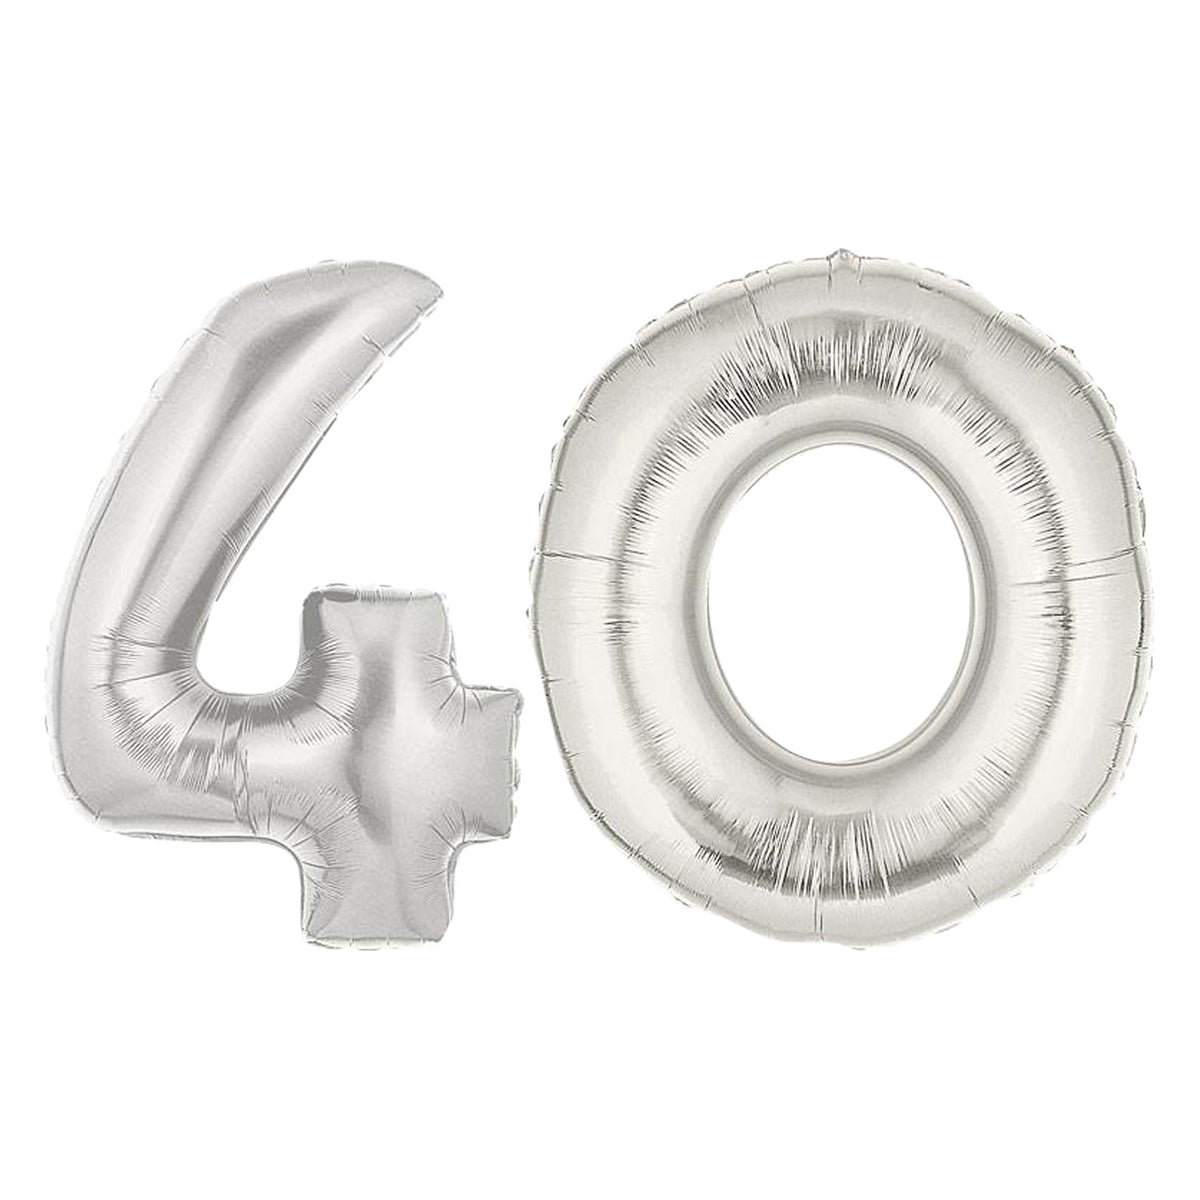 Silver 40 Balloon Number Set